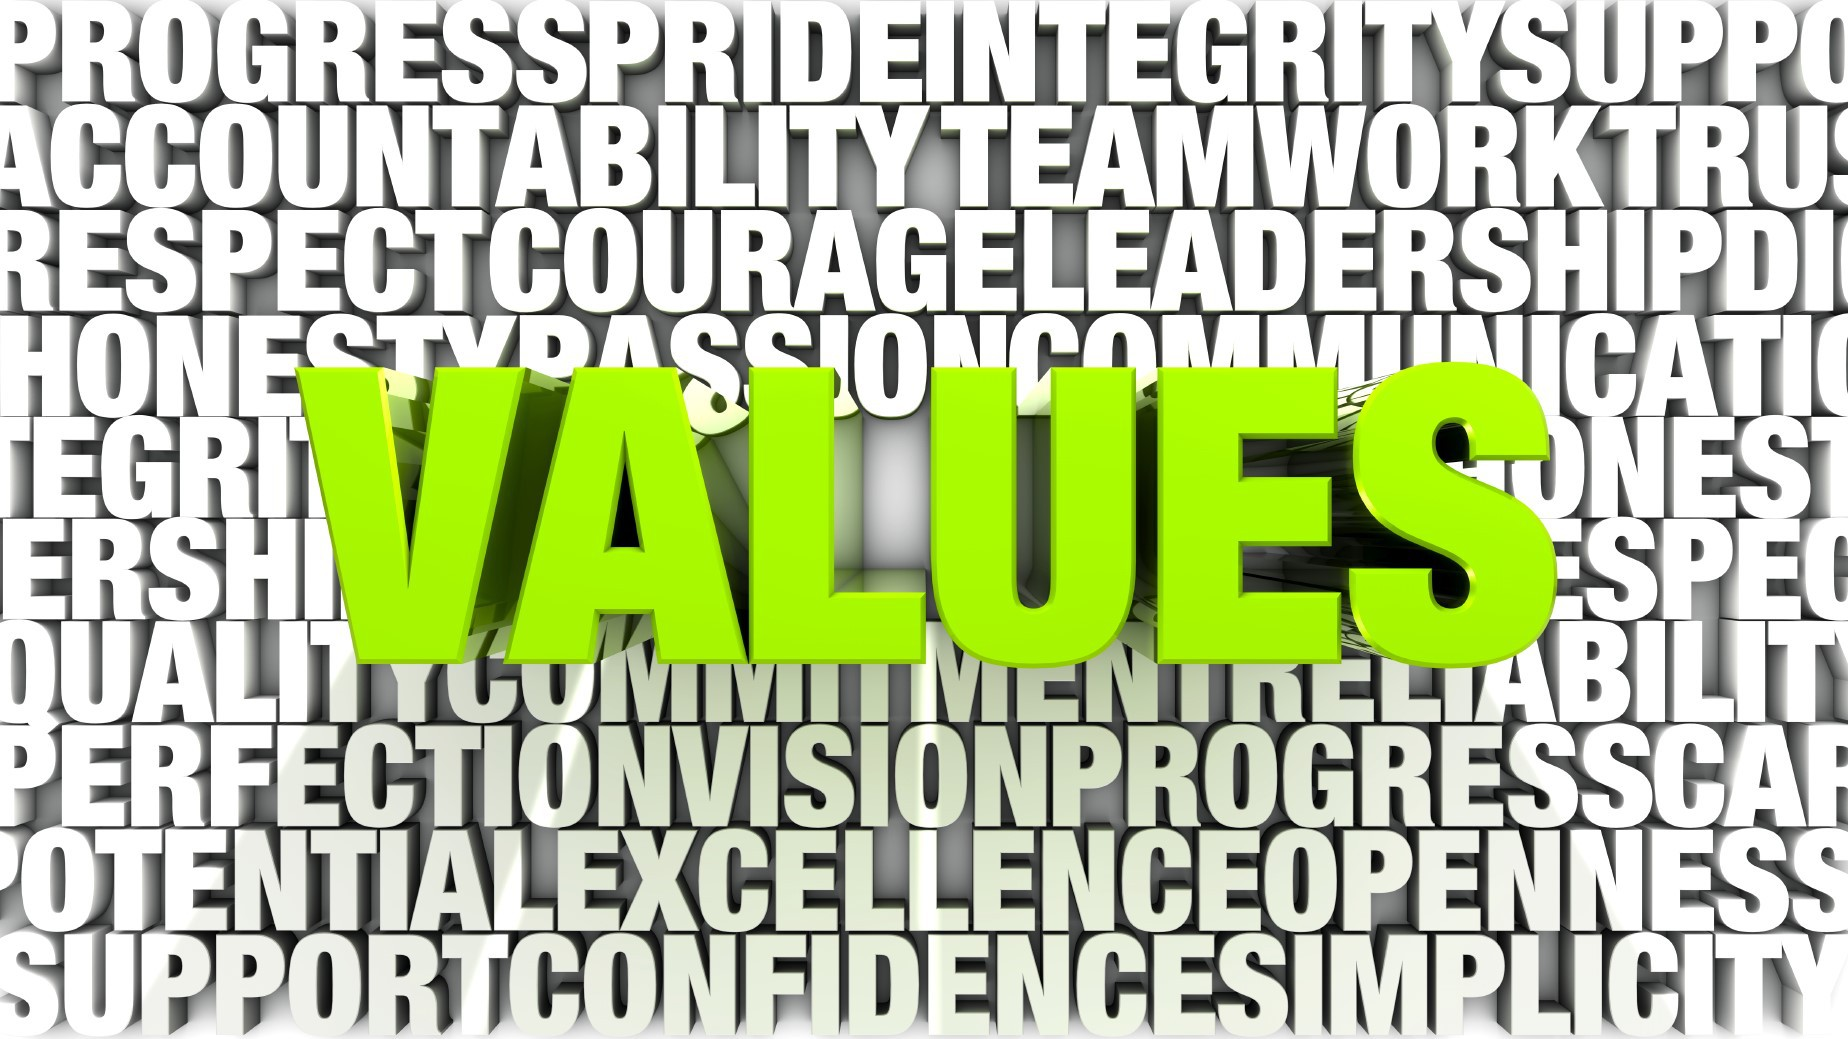 our belief systems and values Our belief system a lot of companies say they function as a family at keller williams realty, we place such an importance on this that we have mo anderson defines the culture of keller williams realty as living the mission, vision, values, beliefs, and perspectives of keller williams realty.